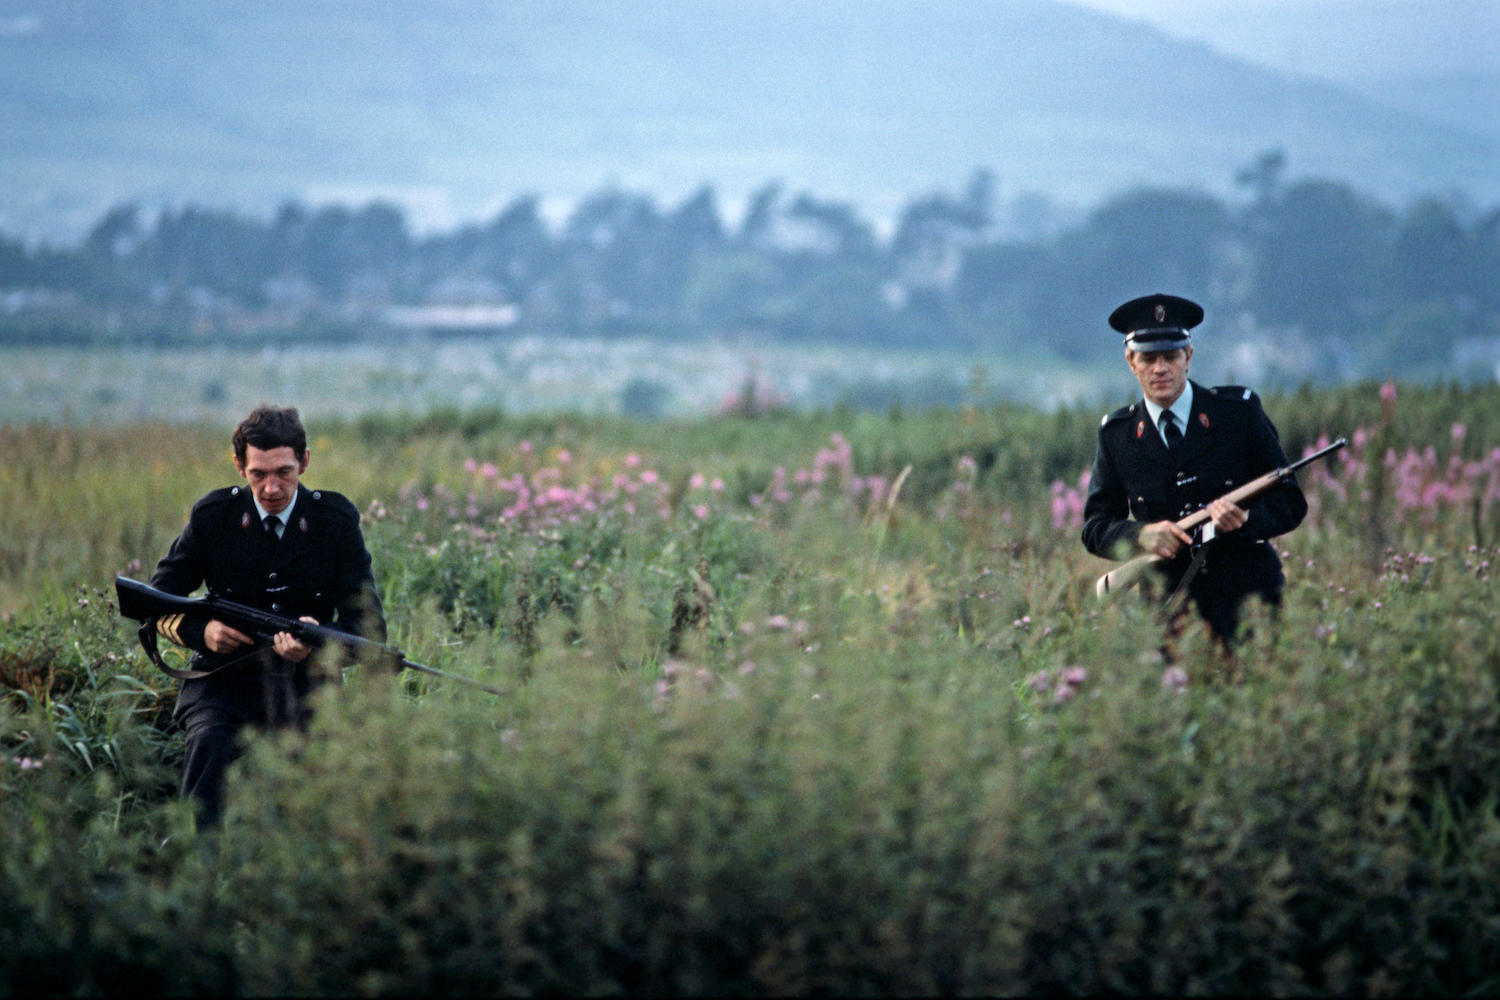 Royal Ulster  Constabulary policemen search for weapons and ammuninition in wasteland during the Troubles